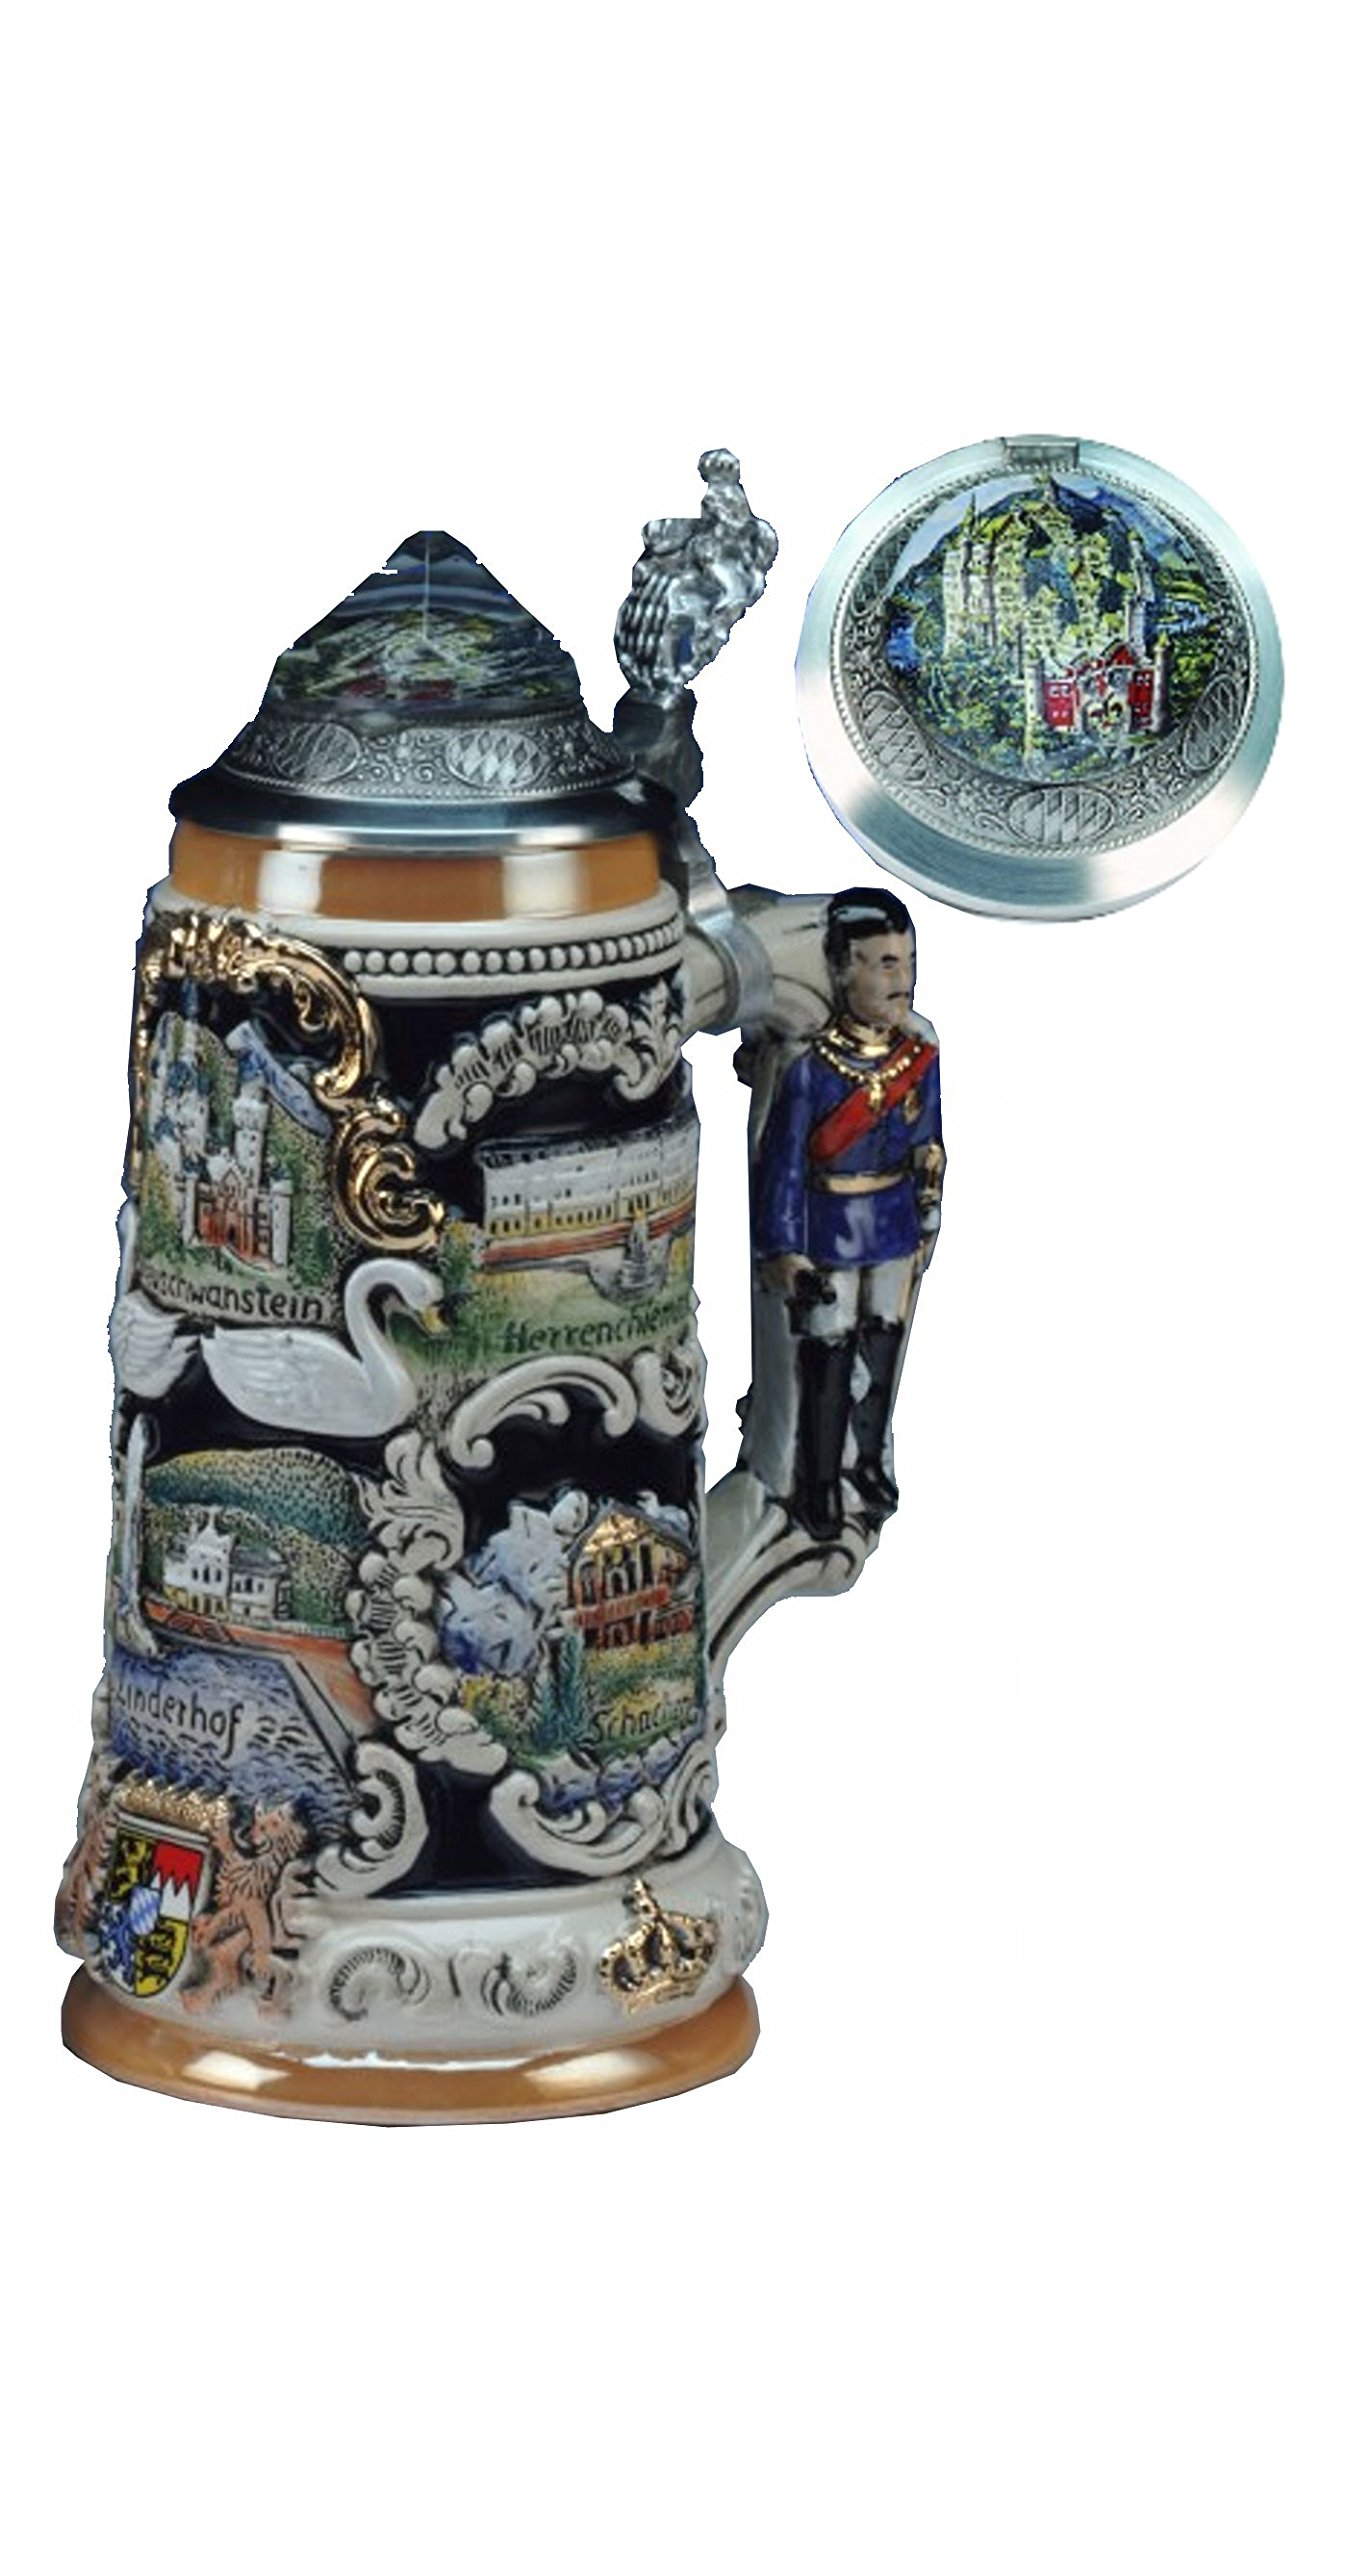 German Beer Stein Bavarian Castle Stein, King Ludwig 3-D handle, Neuschwanstein Crystal lid 0.75 liter tankard, beer mug